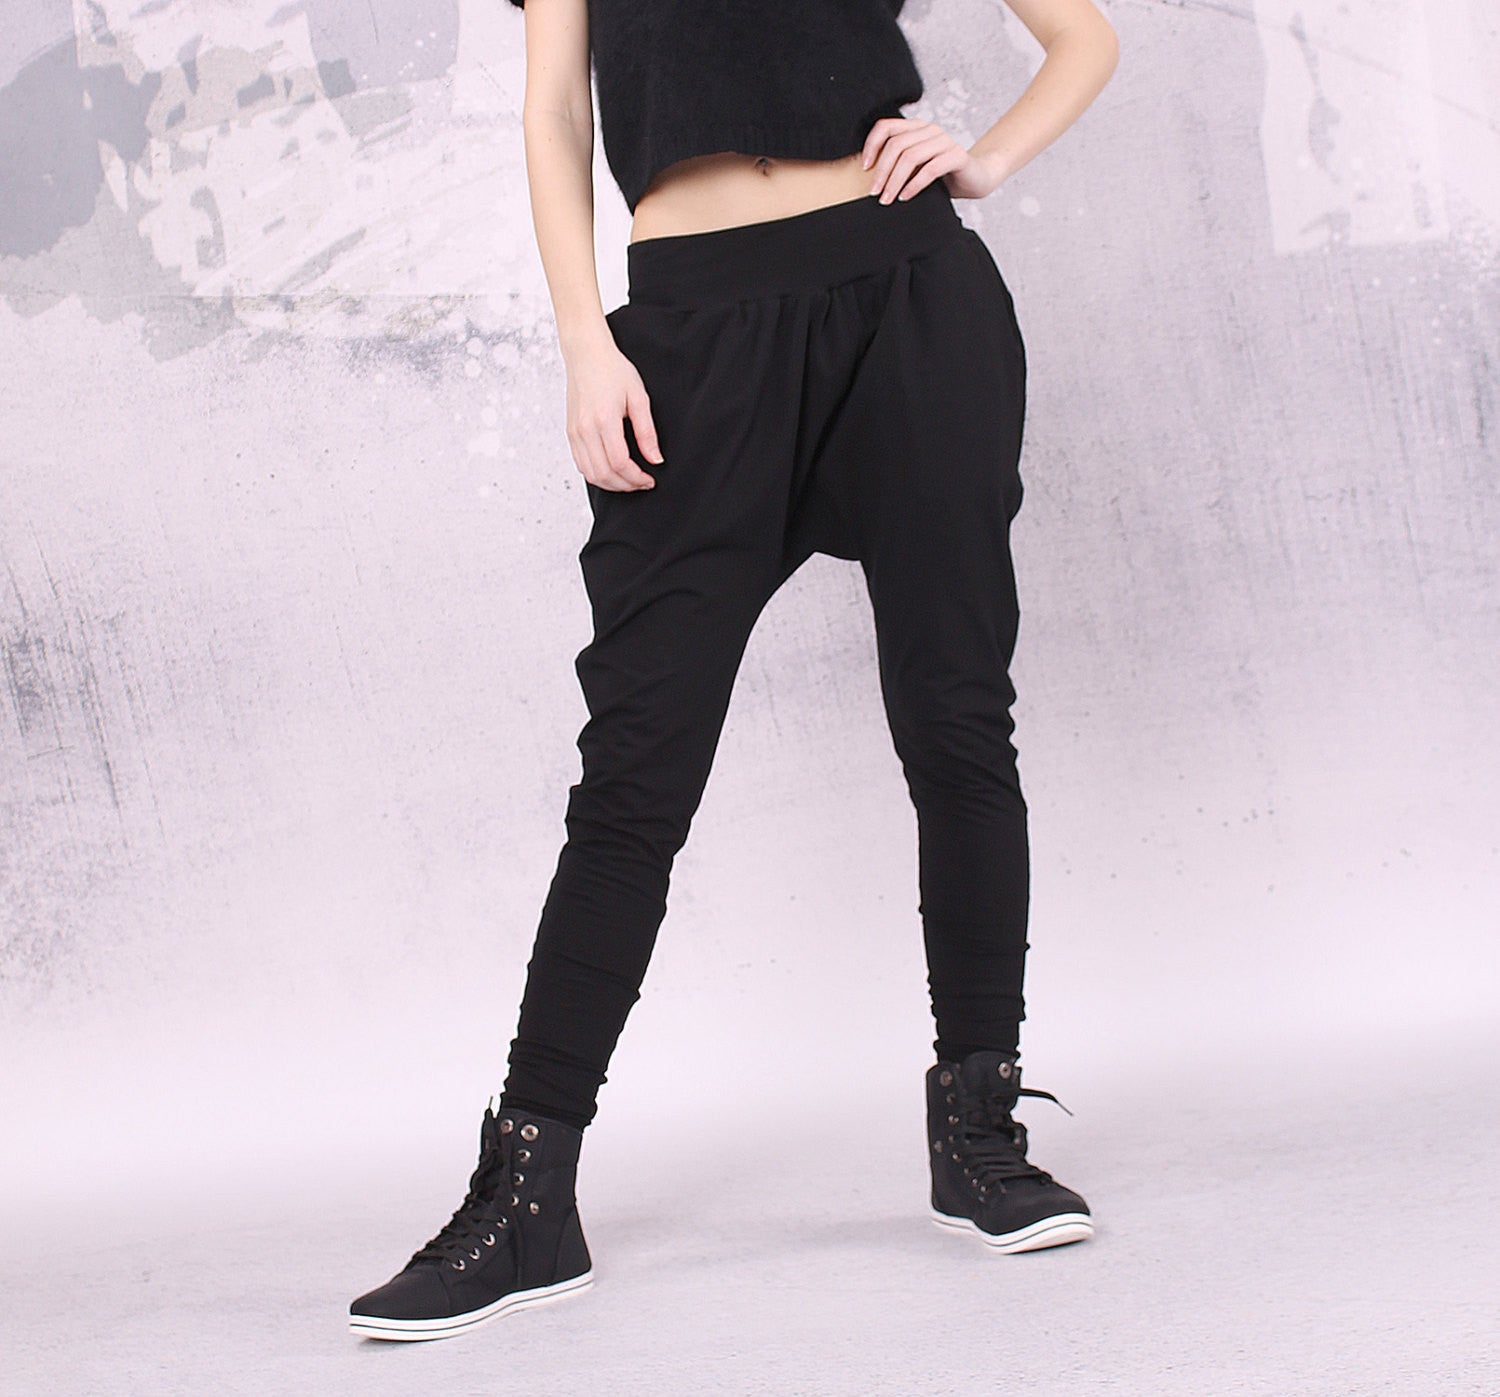 Black long loose pants with two pockets,extravagant pants,UM025CL